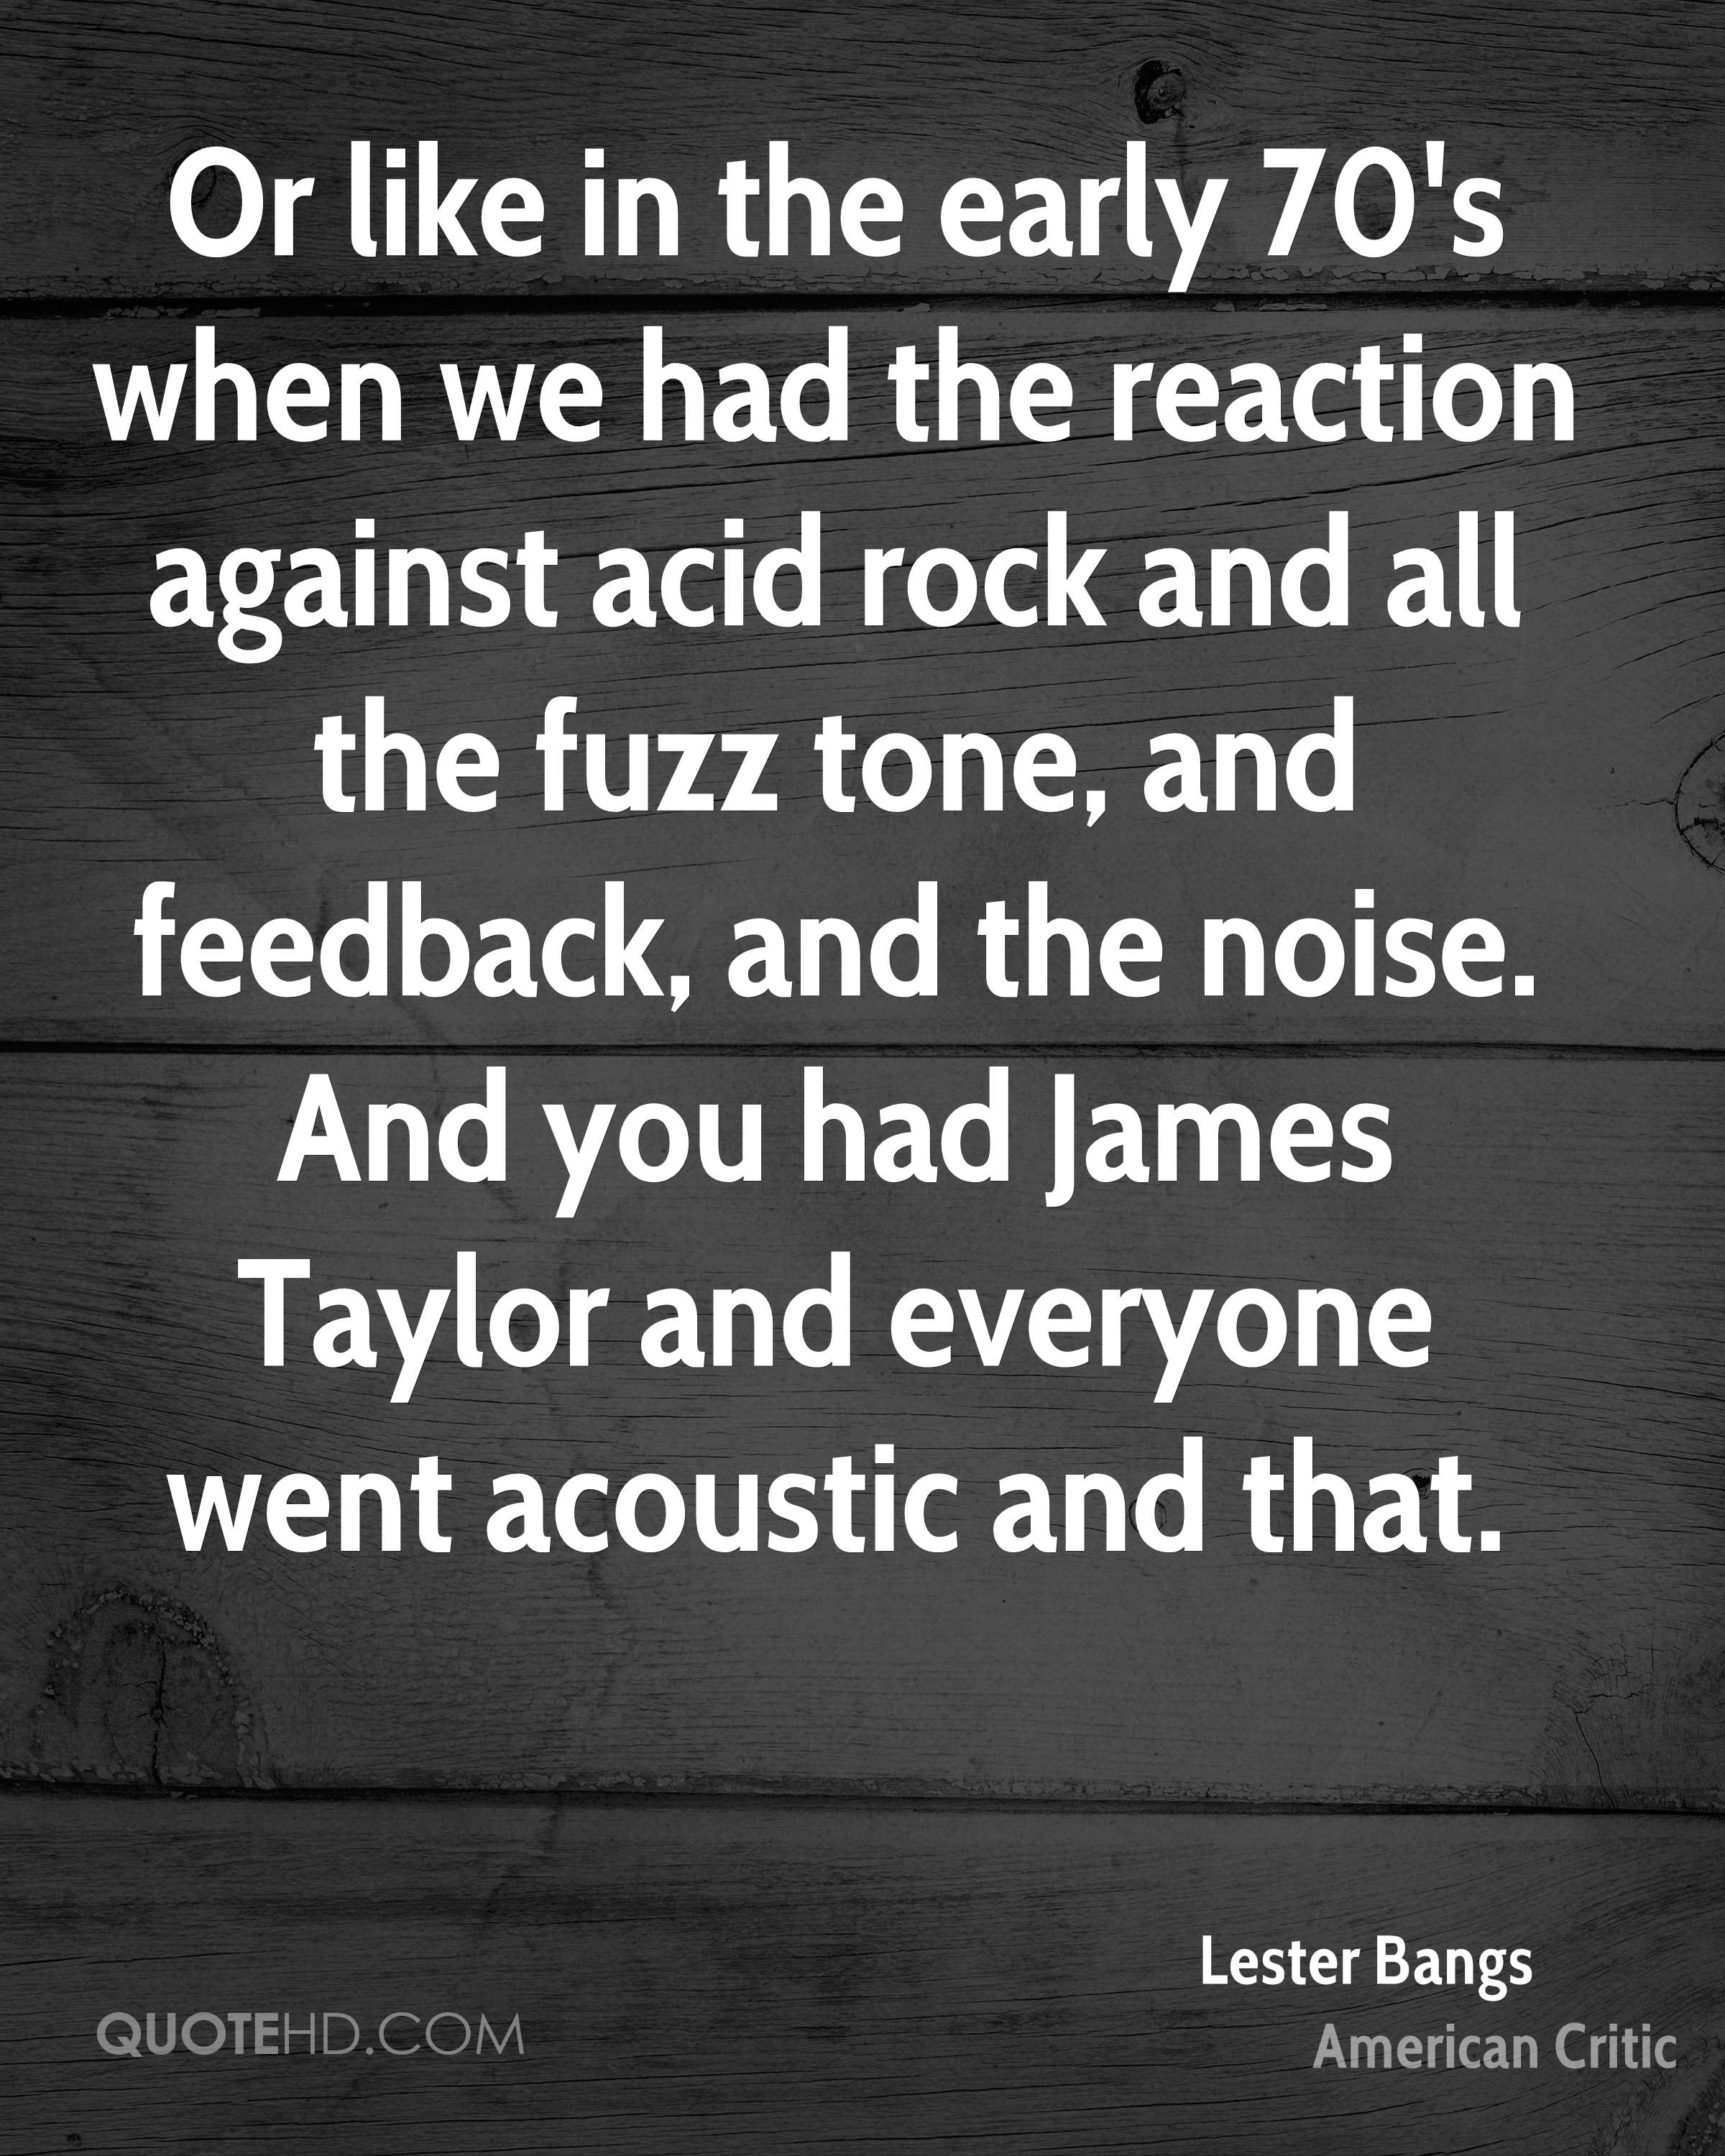 Or like in the early 70's when we had the reaction against acid rock and all the fuzz tone, and feedback, and the noise. And you had James Taylor and everyone went acoustic and that.